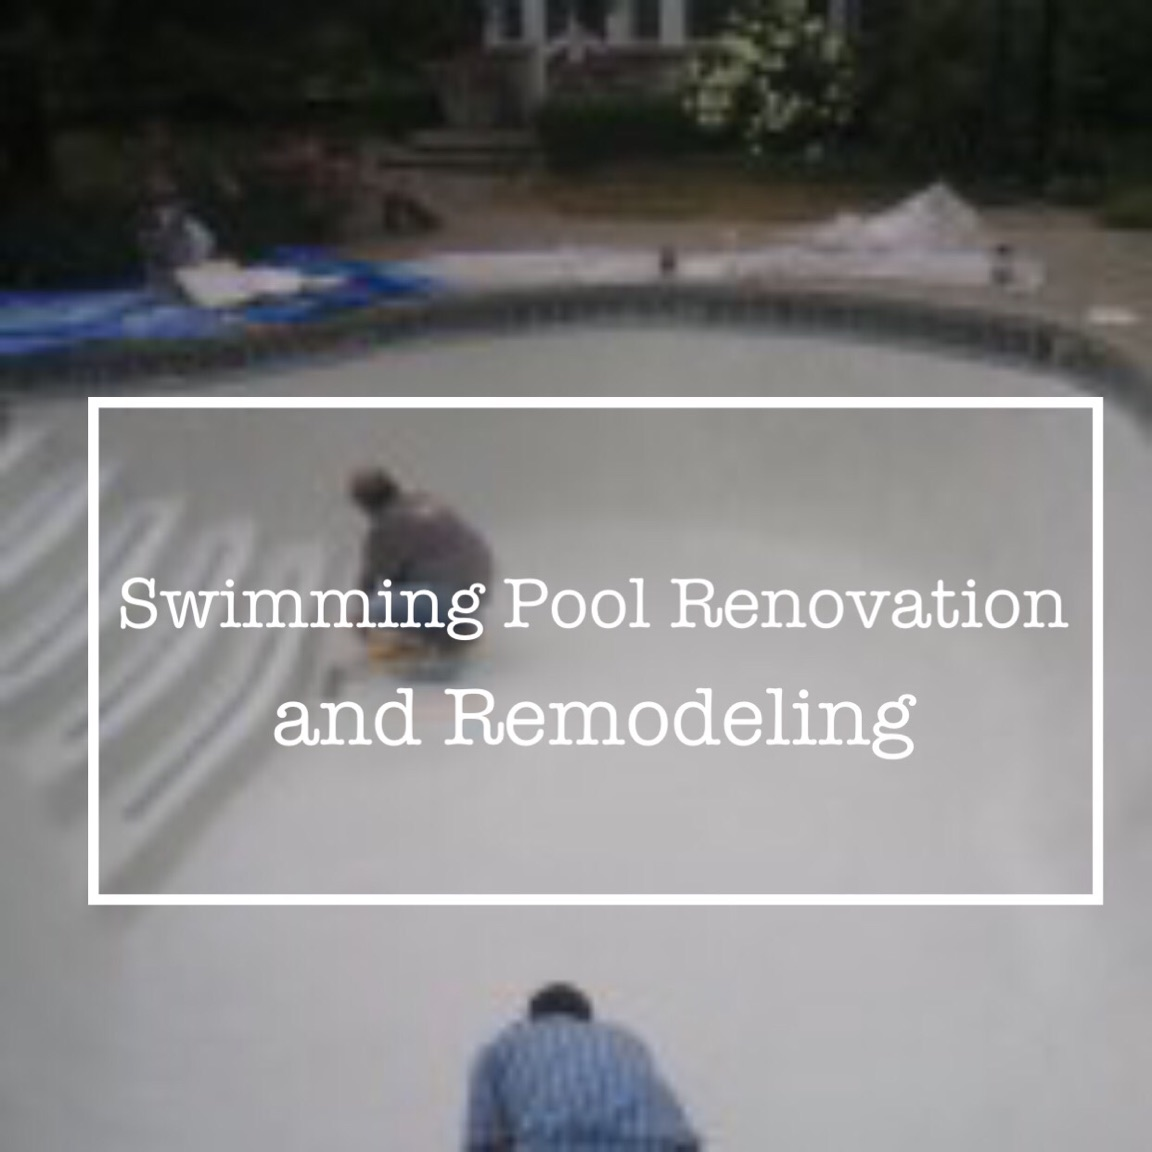 Swimming Pools Service and Remodel